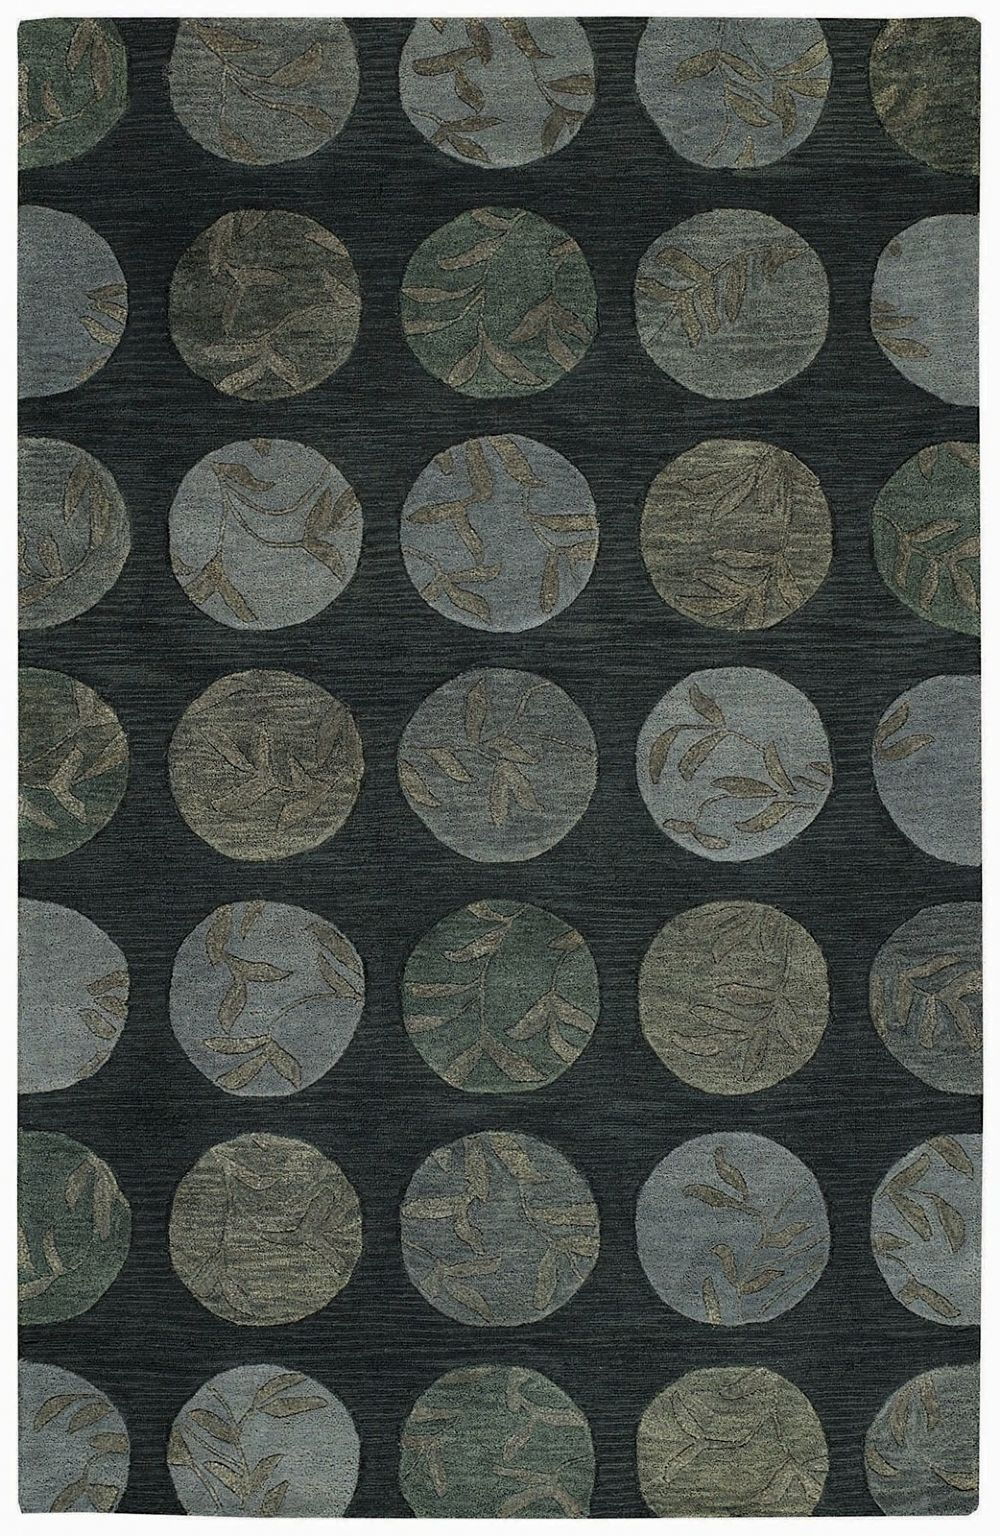 capel desert plateau-floral step contemporary area rug collection